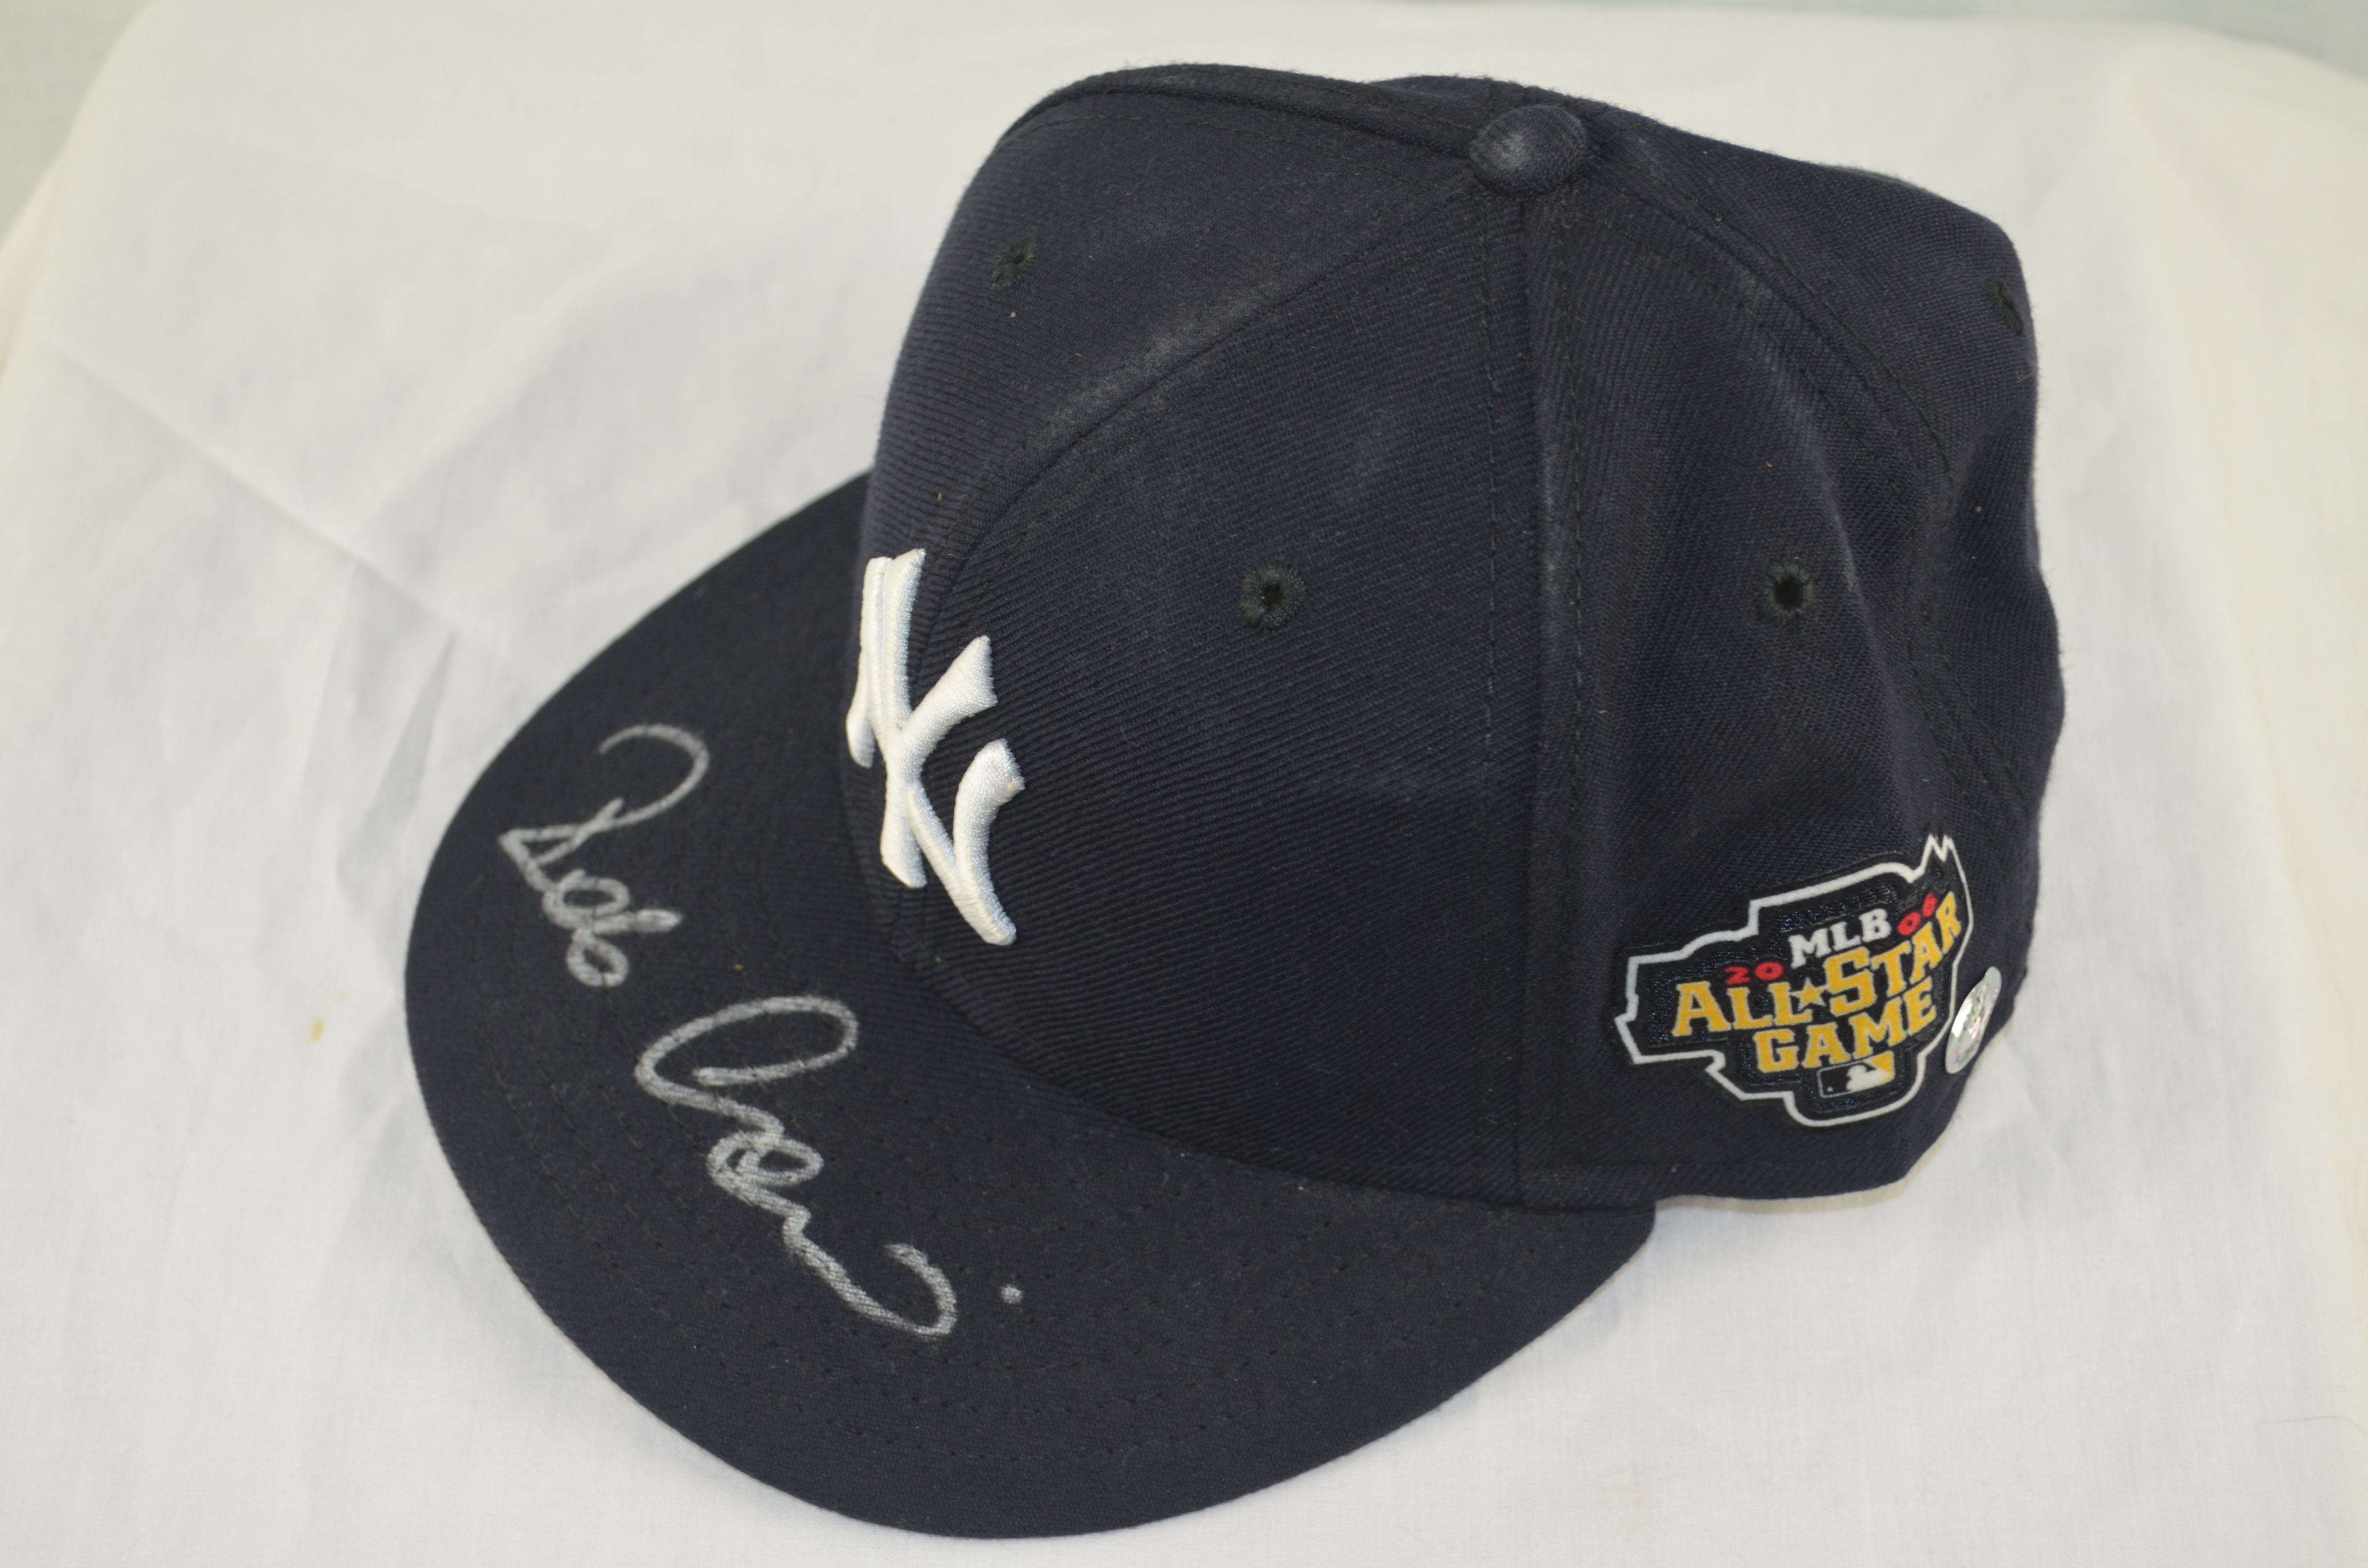 Robinson Cano Autographed 2006 New York Yankees All Star Game Hat ... aa0e224784e